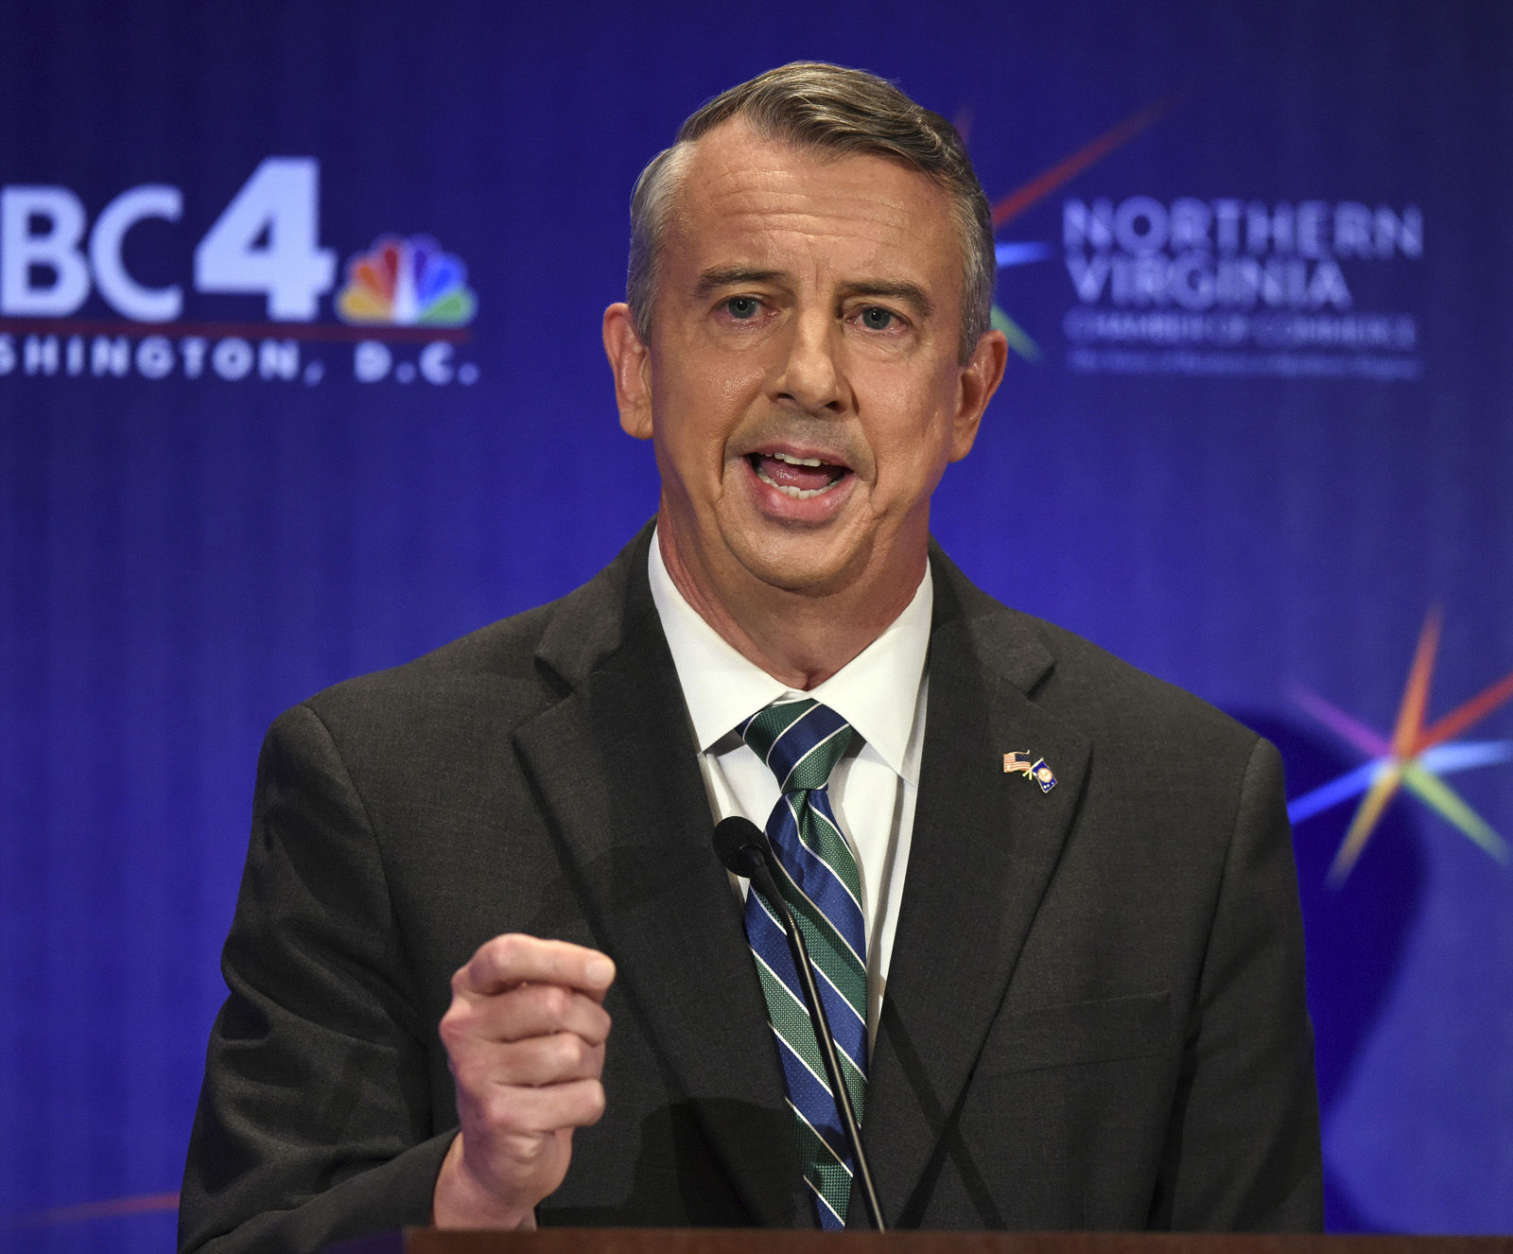 MCLEAN, VA - SEPTEMBER 19: Republican candidate Ed Gillespie makes his opening statement during his debate with Lt. Gov. Ralph Northam, Democrat, on September, 19, 2017 in McLean, VA. (Pool Photo by Bill O'Leary/The Washington Post)